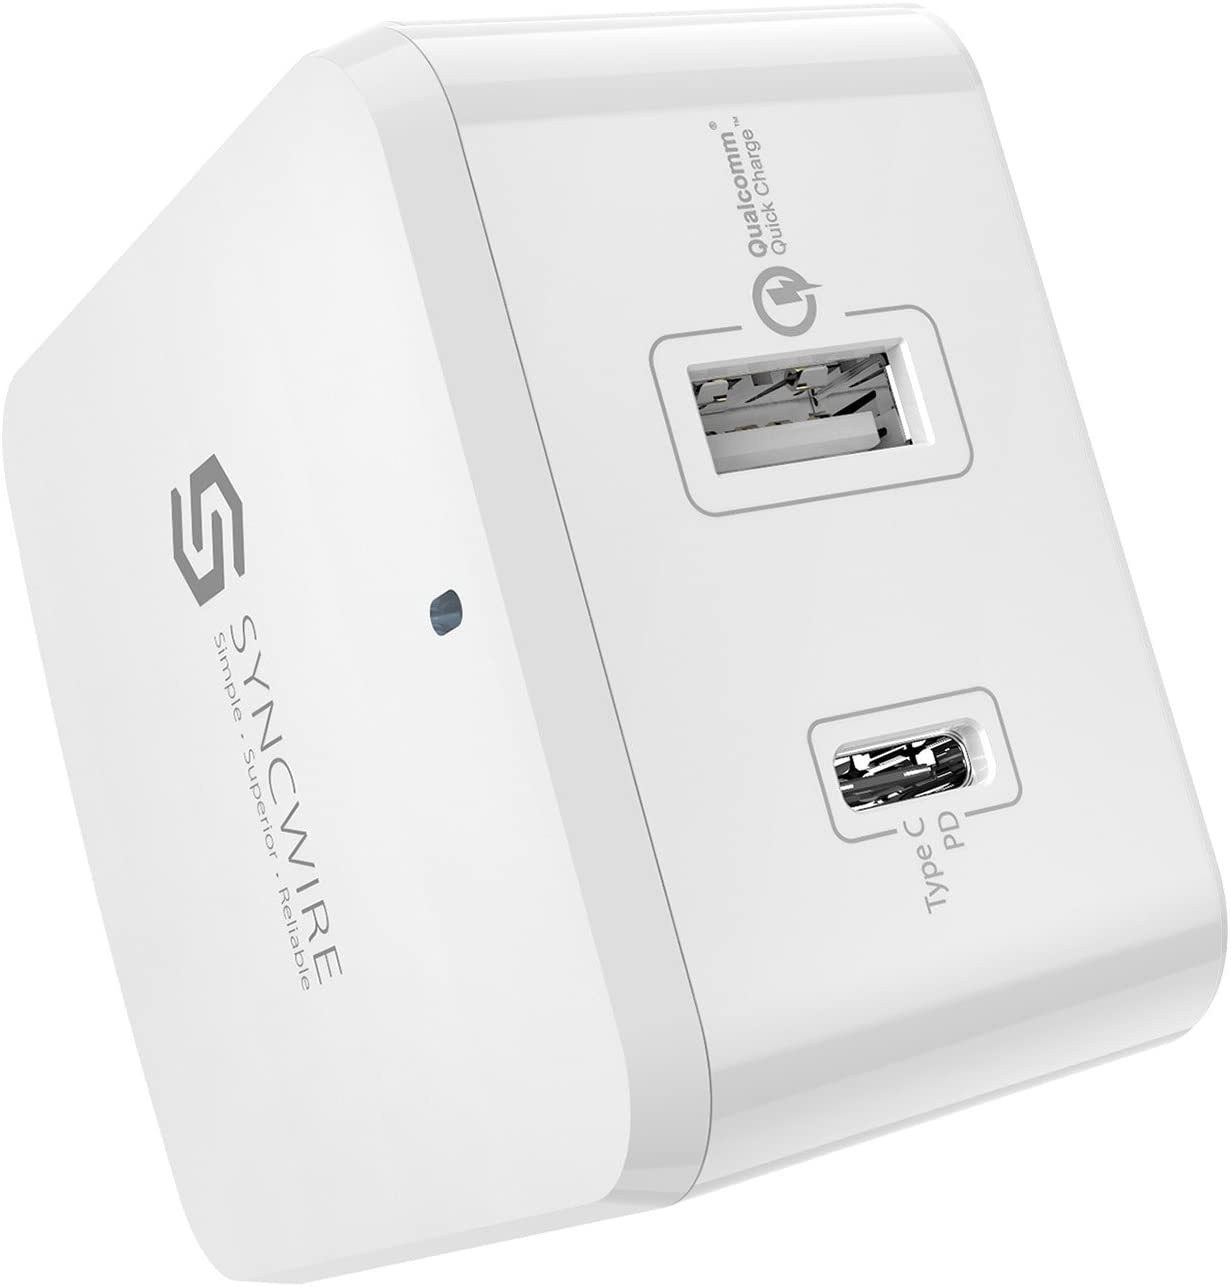 Syncwire Chargers - The Goto Chargers for Photography